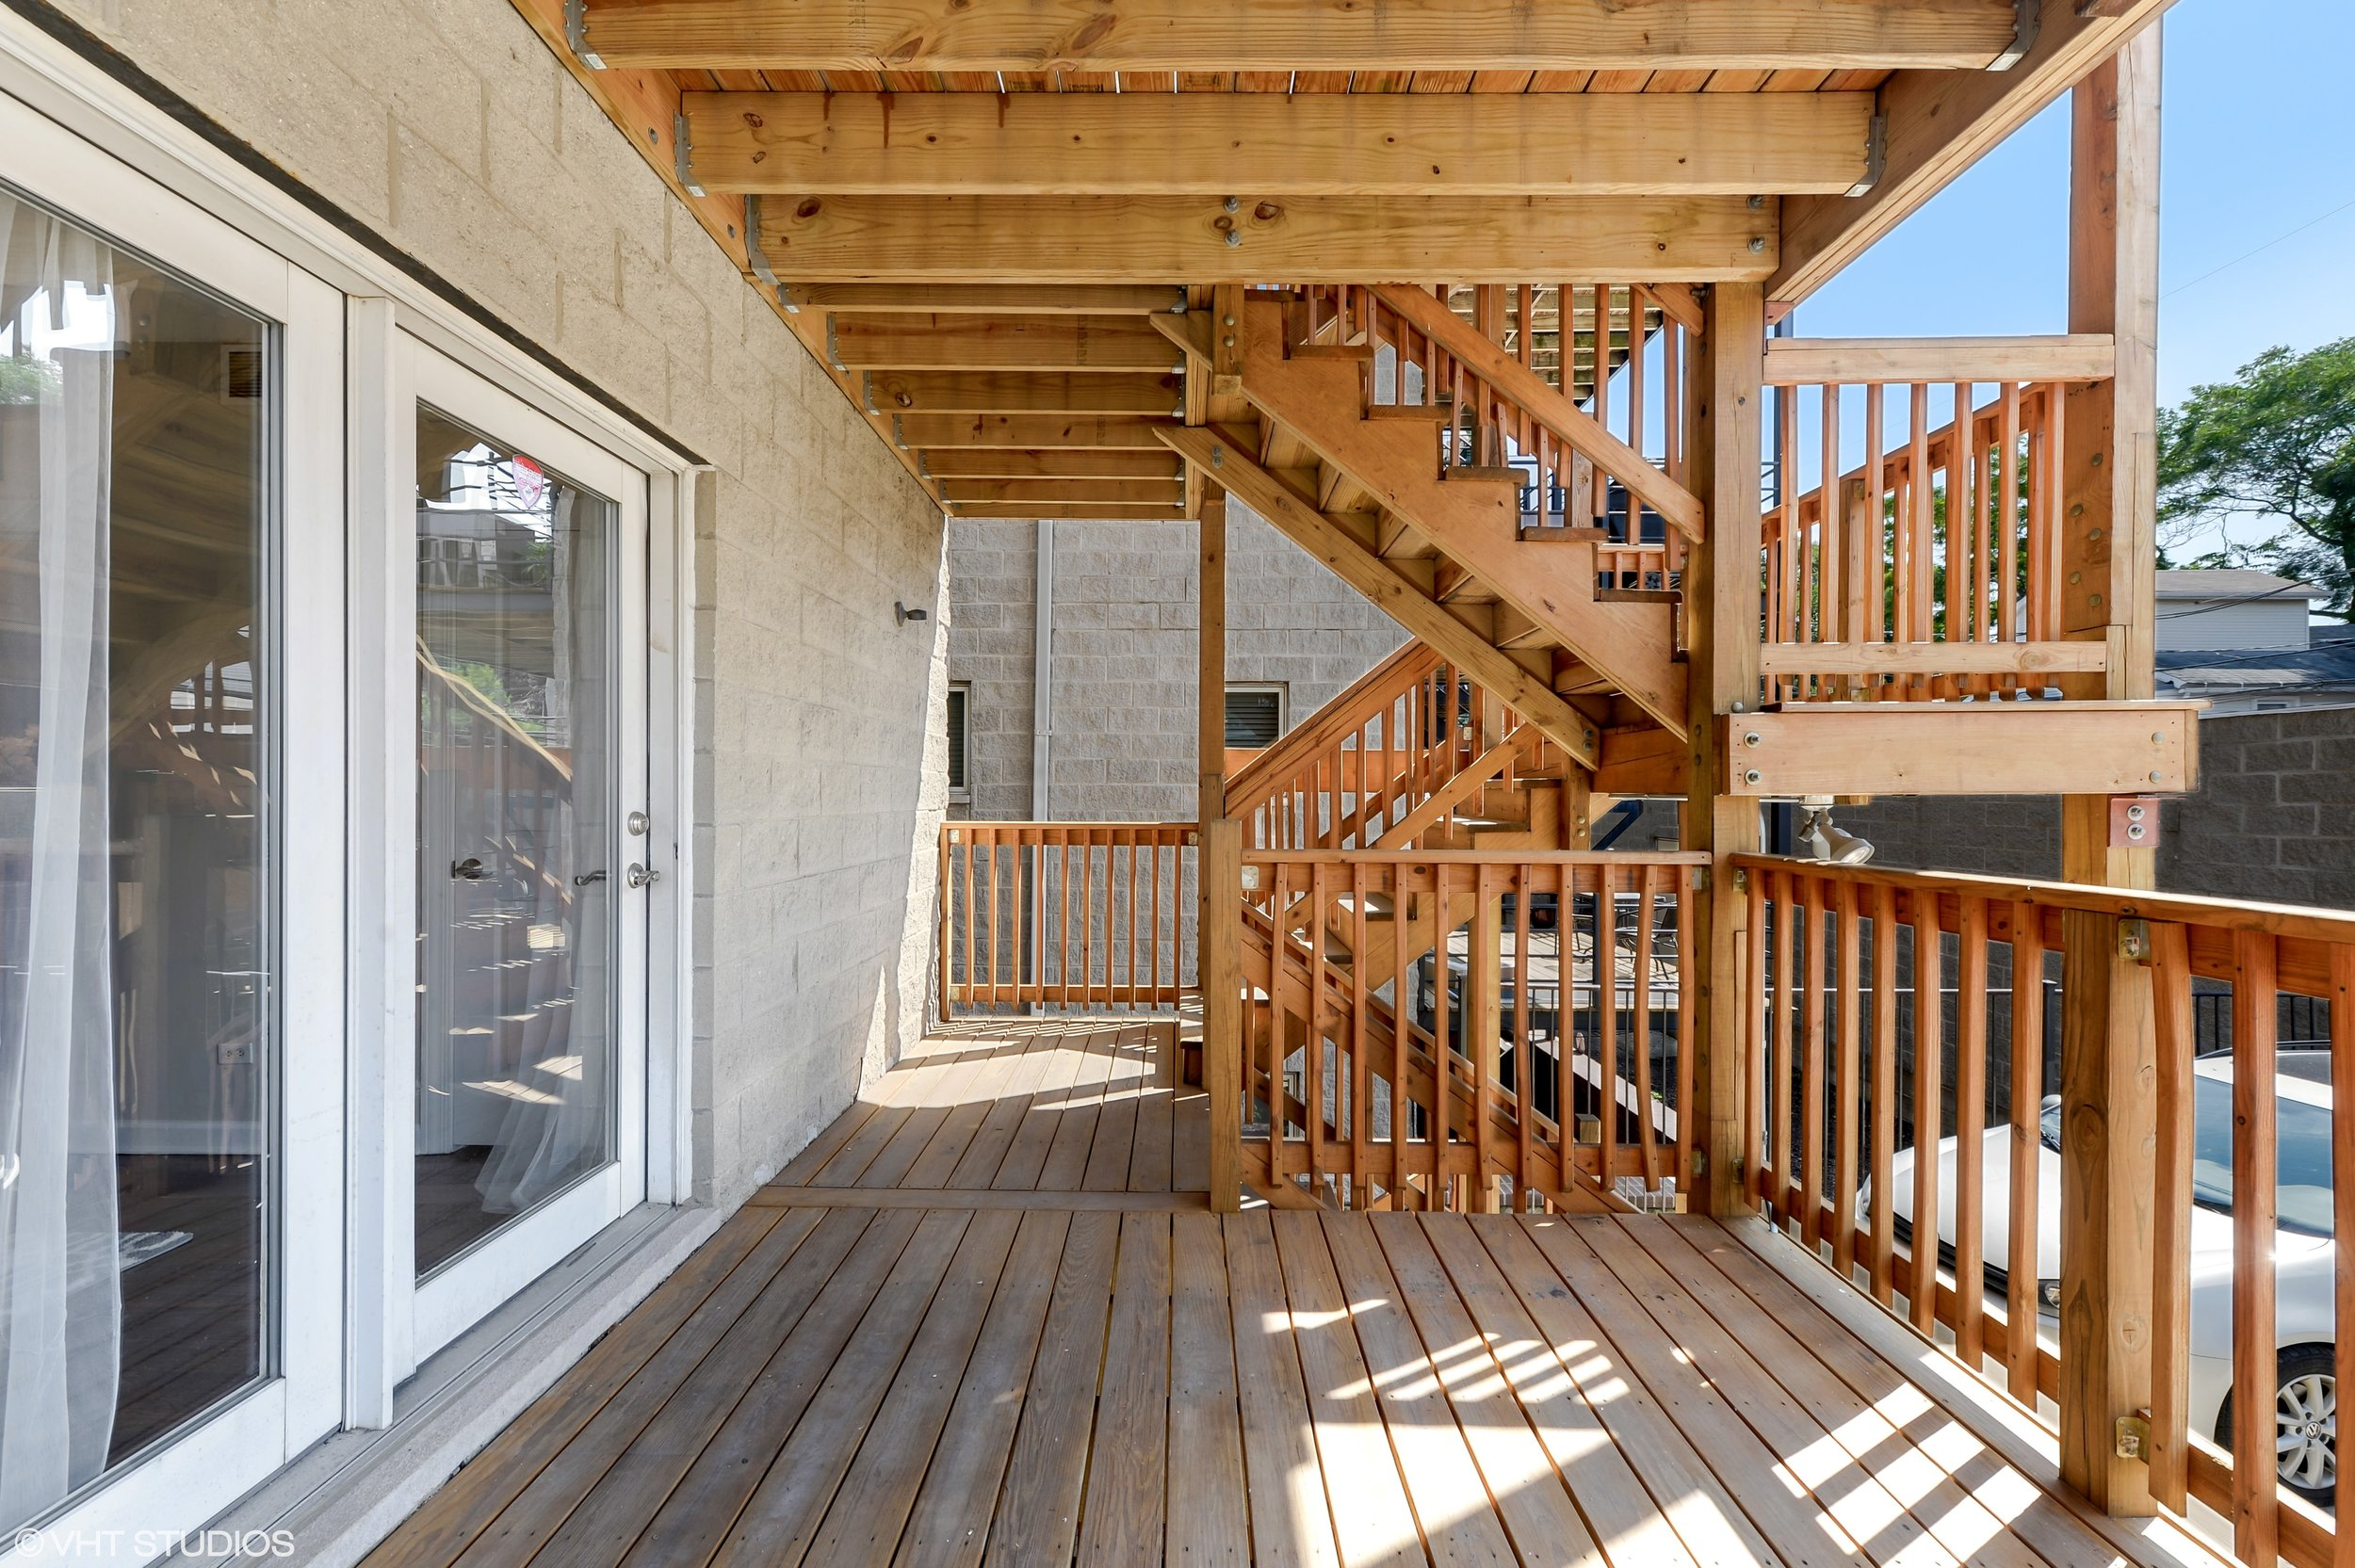 20_942NWoodStreet_Unit1_66_Deck_HiRes.jpg